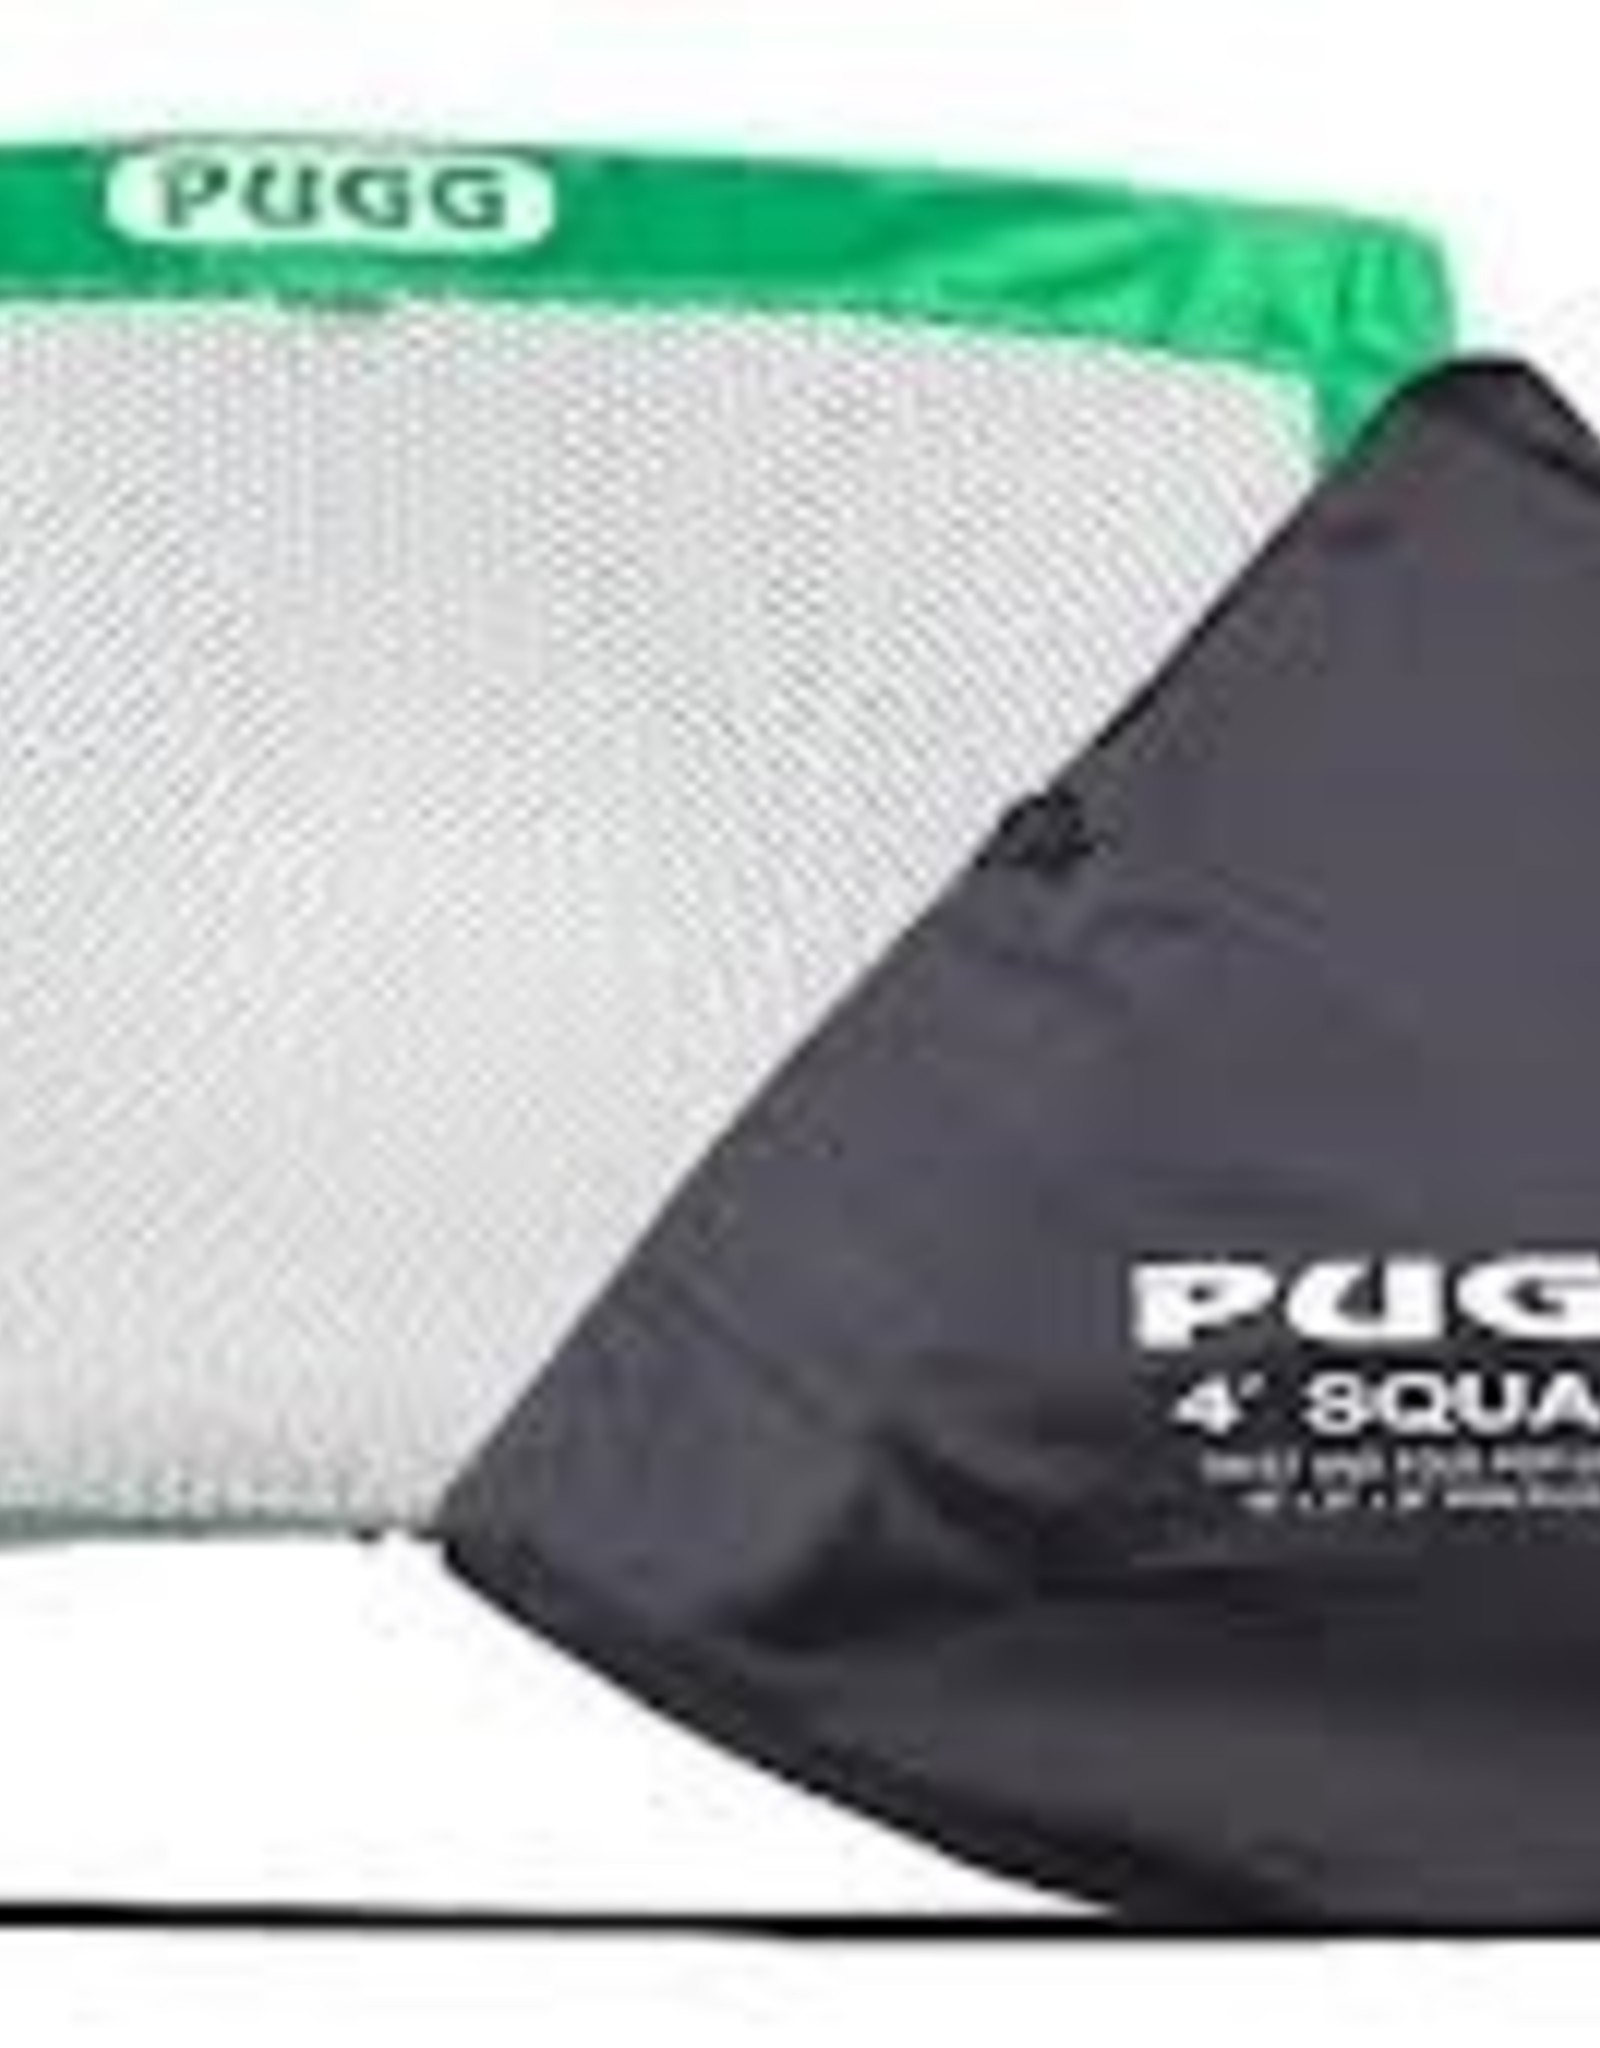 Pugg Pugg 4' Square Weighted Goal